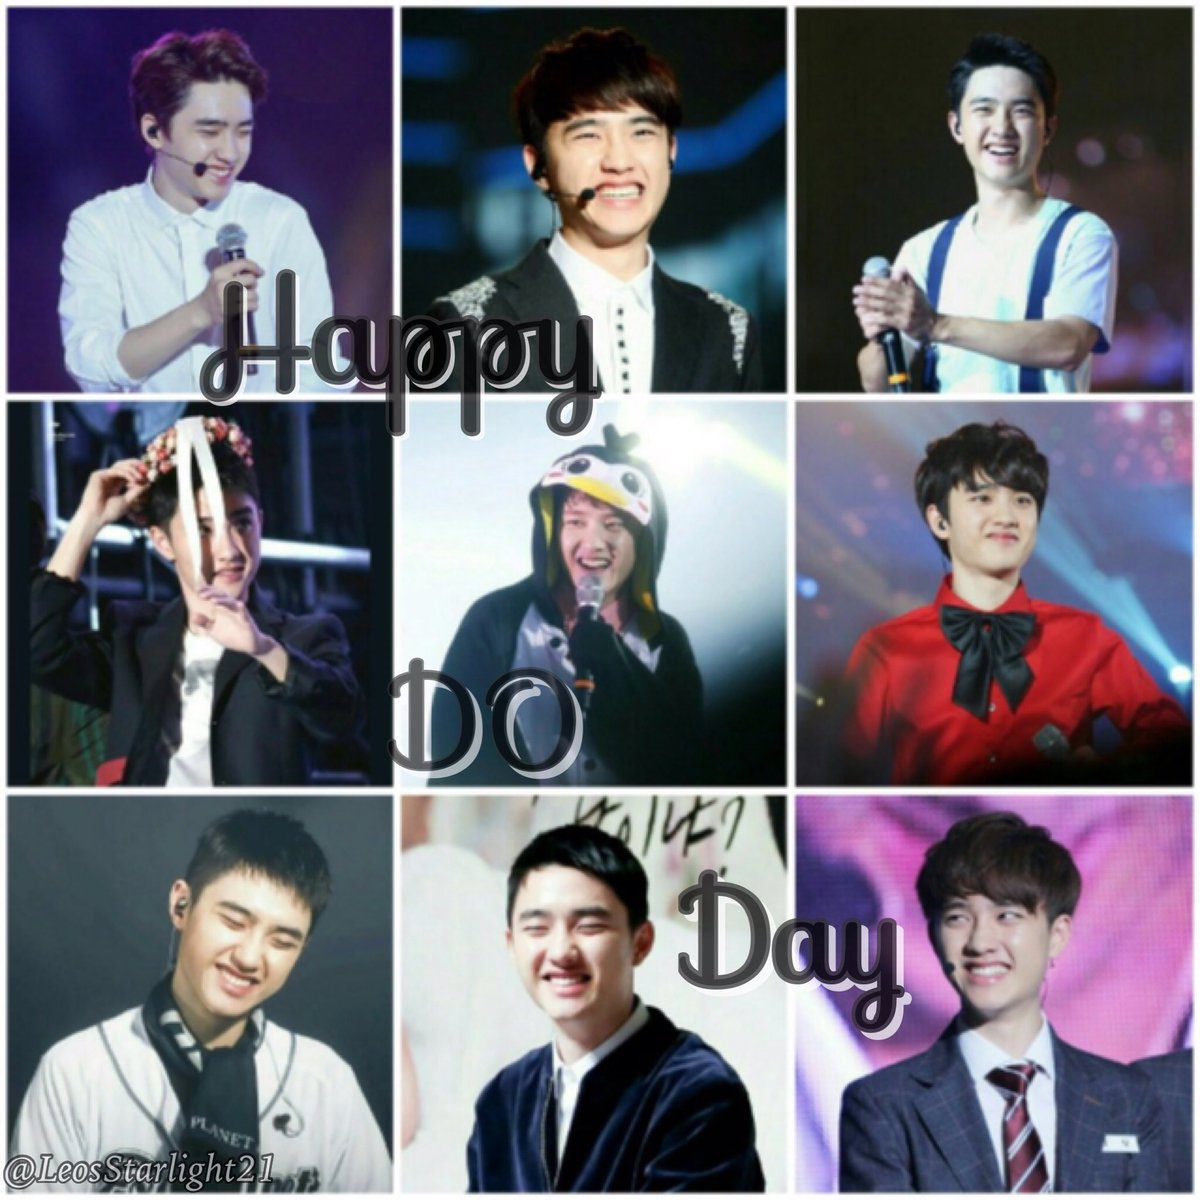 I know I&#39;m super late but it&#39;s better late than never  HAPPY BIRTHDAY KYUNGSOO!!!  #happykyungsooday #happydoday  #HappyDyoDay <br>http://pic.twitter.com/JhVNf15DeM